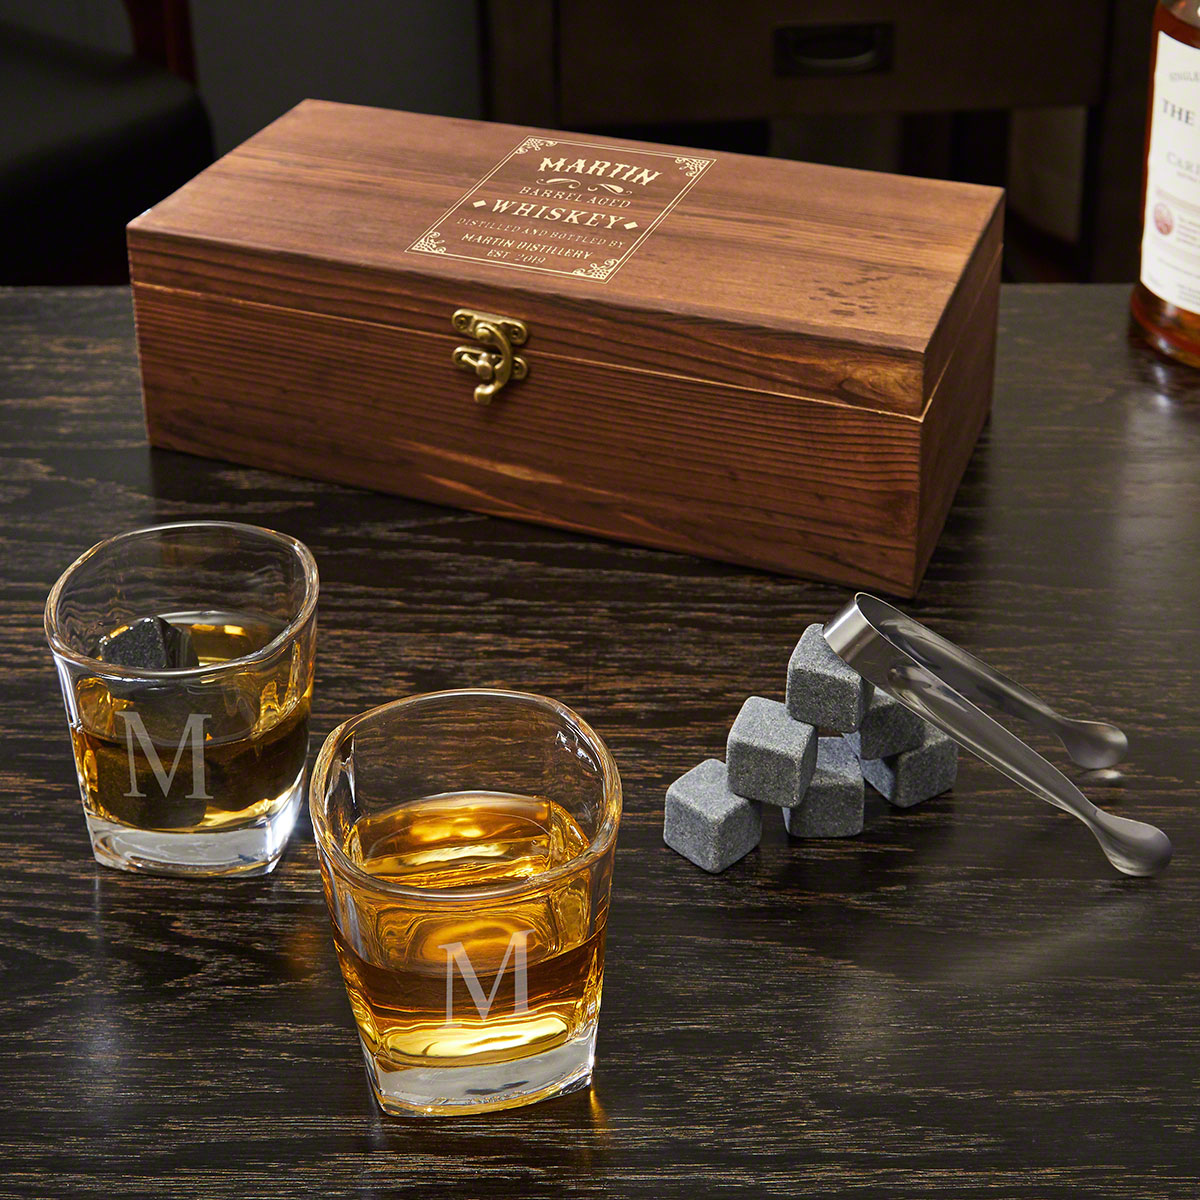 Stillhouse-Engraved-Shot-Glass-and-Whiskey-Stones-Wooden-Box-Gift-Set